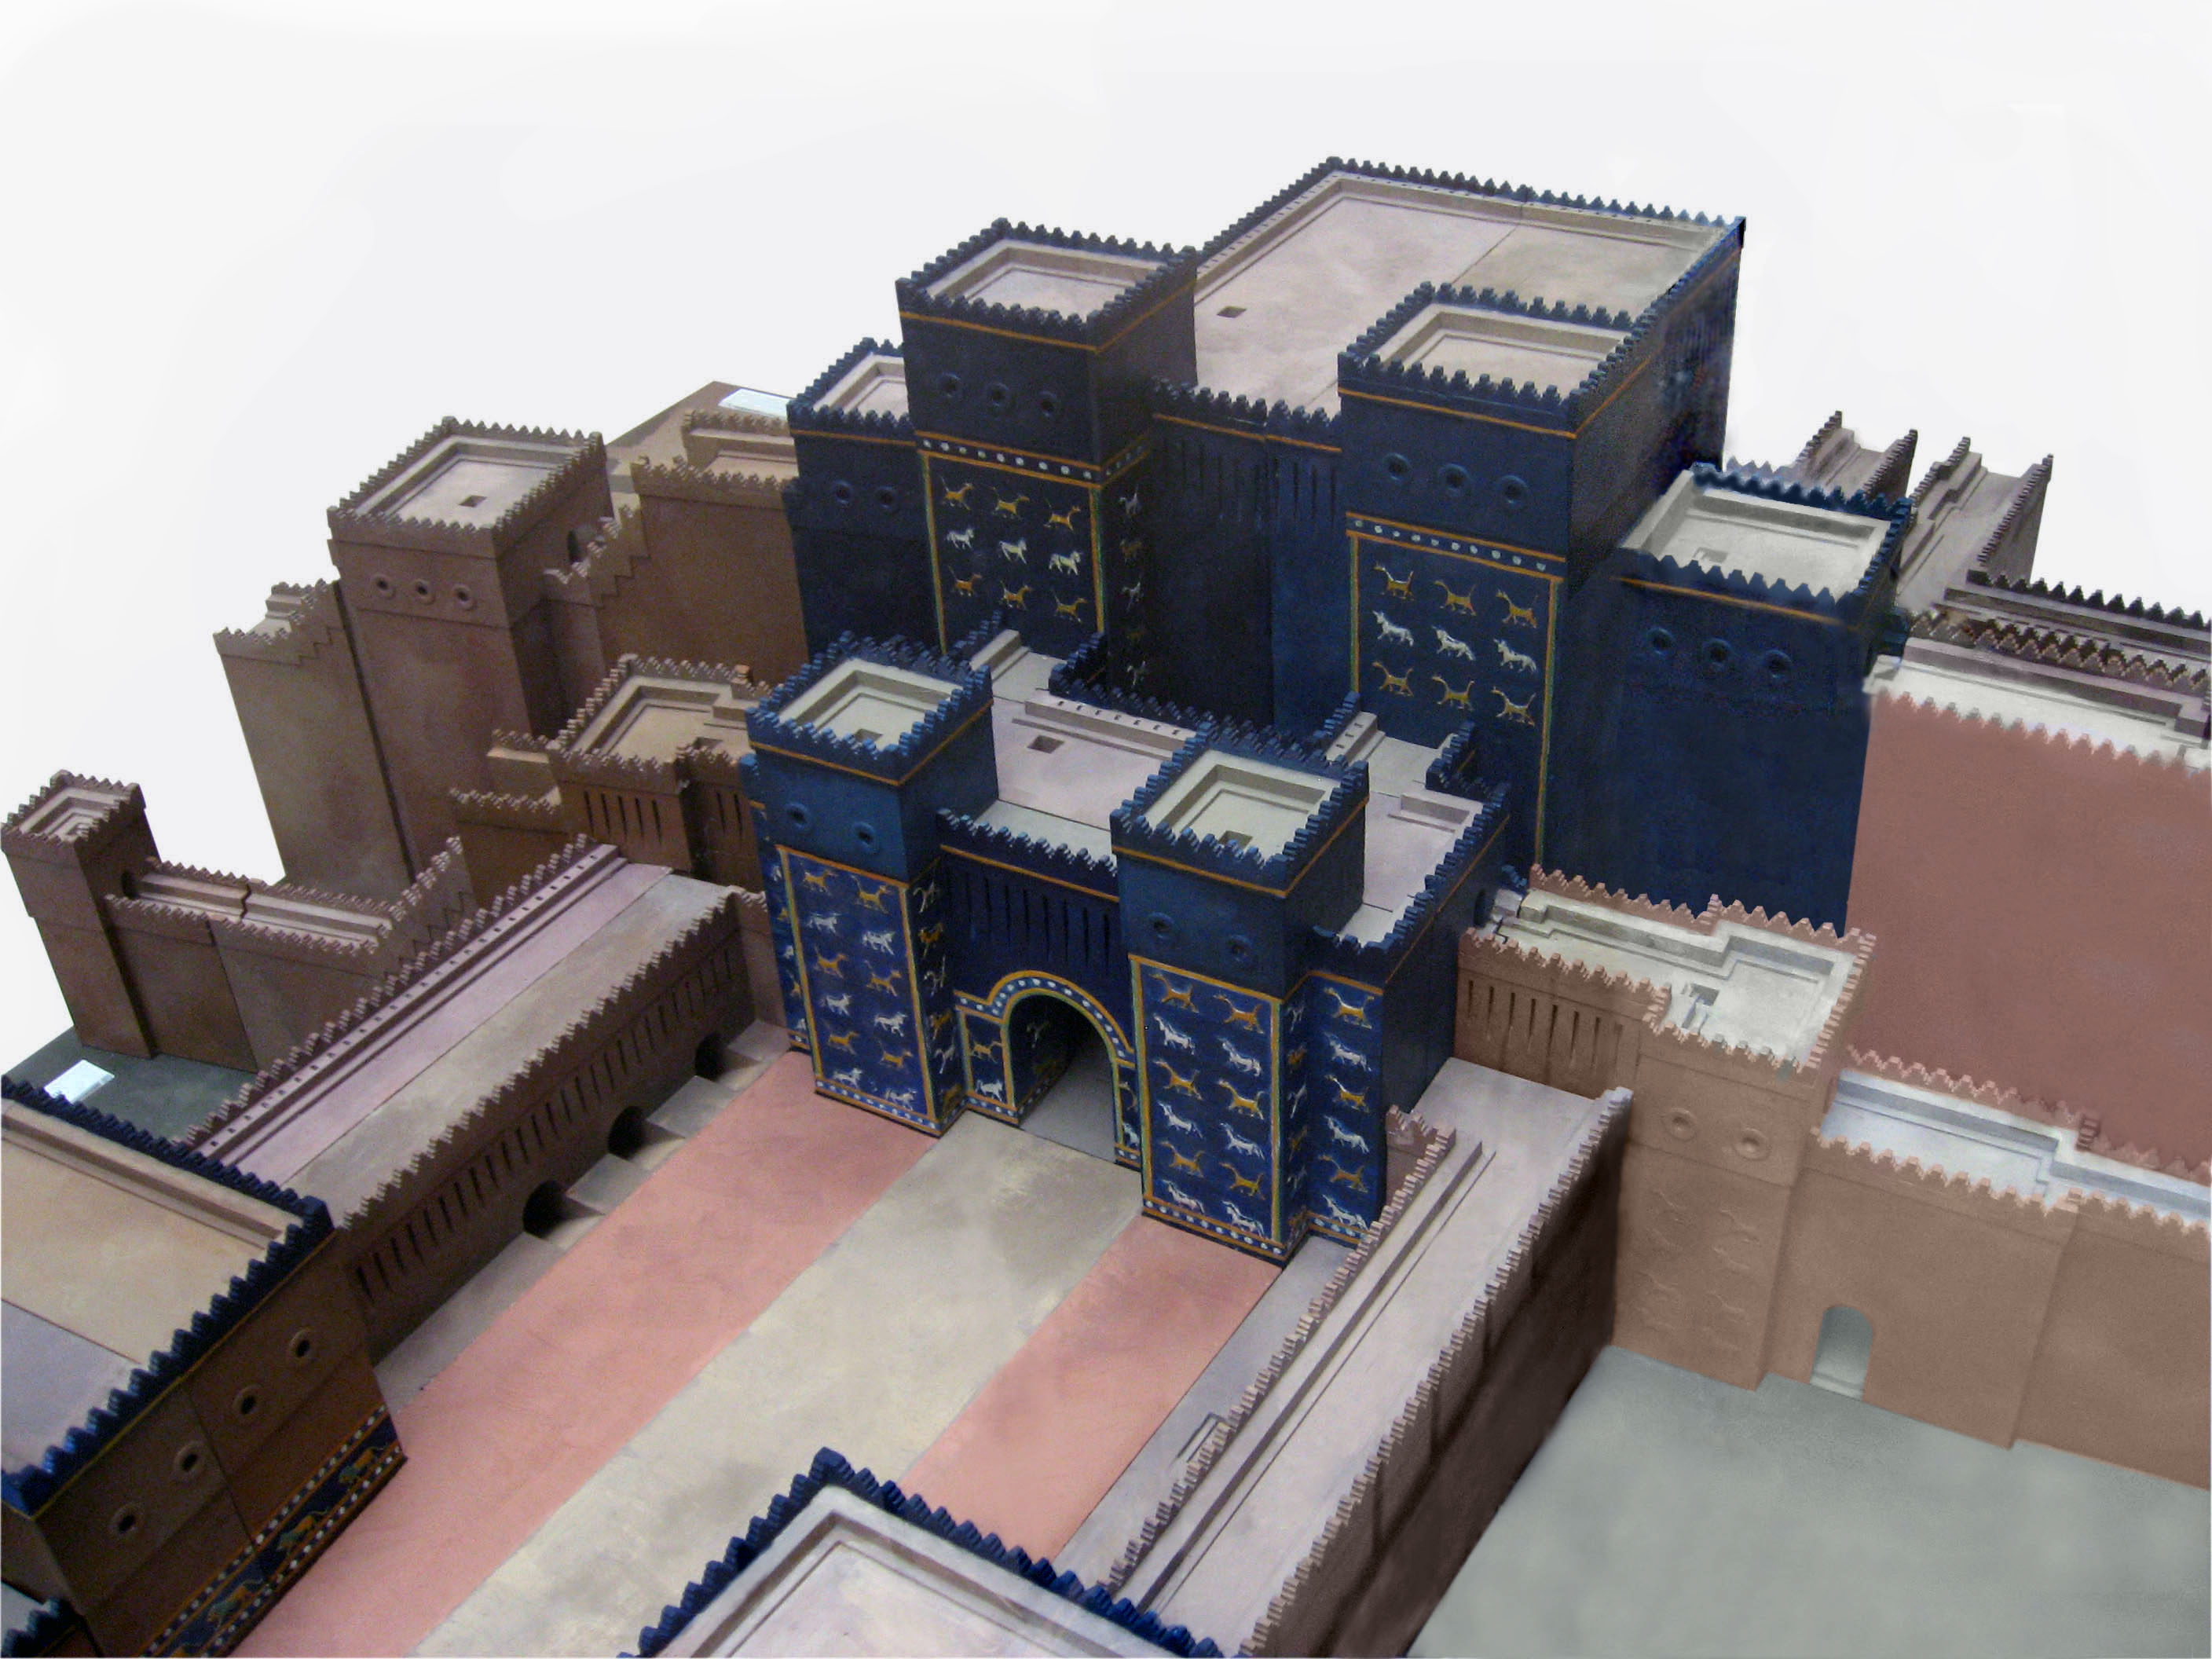 Model of the Ishtar Gate.